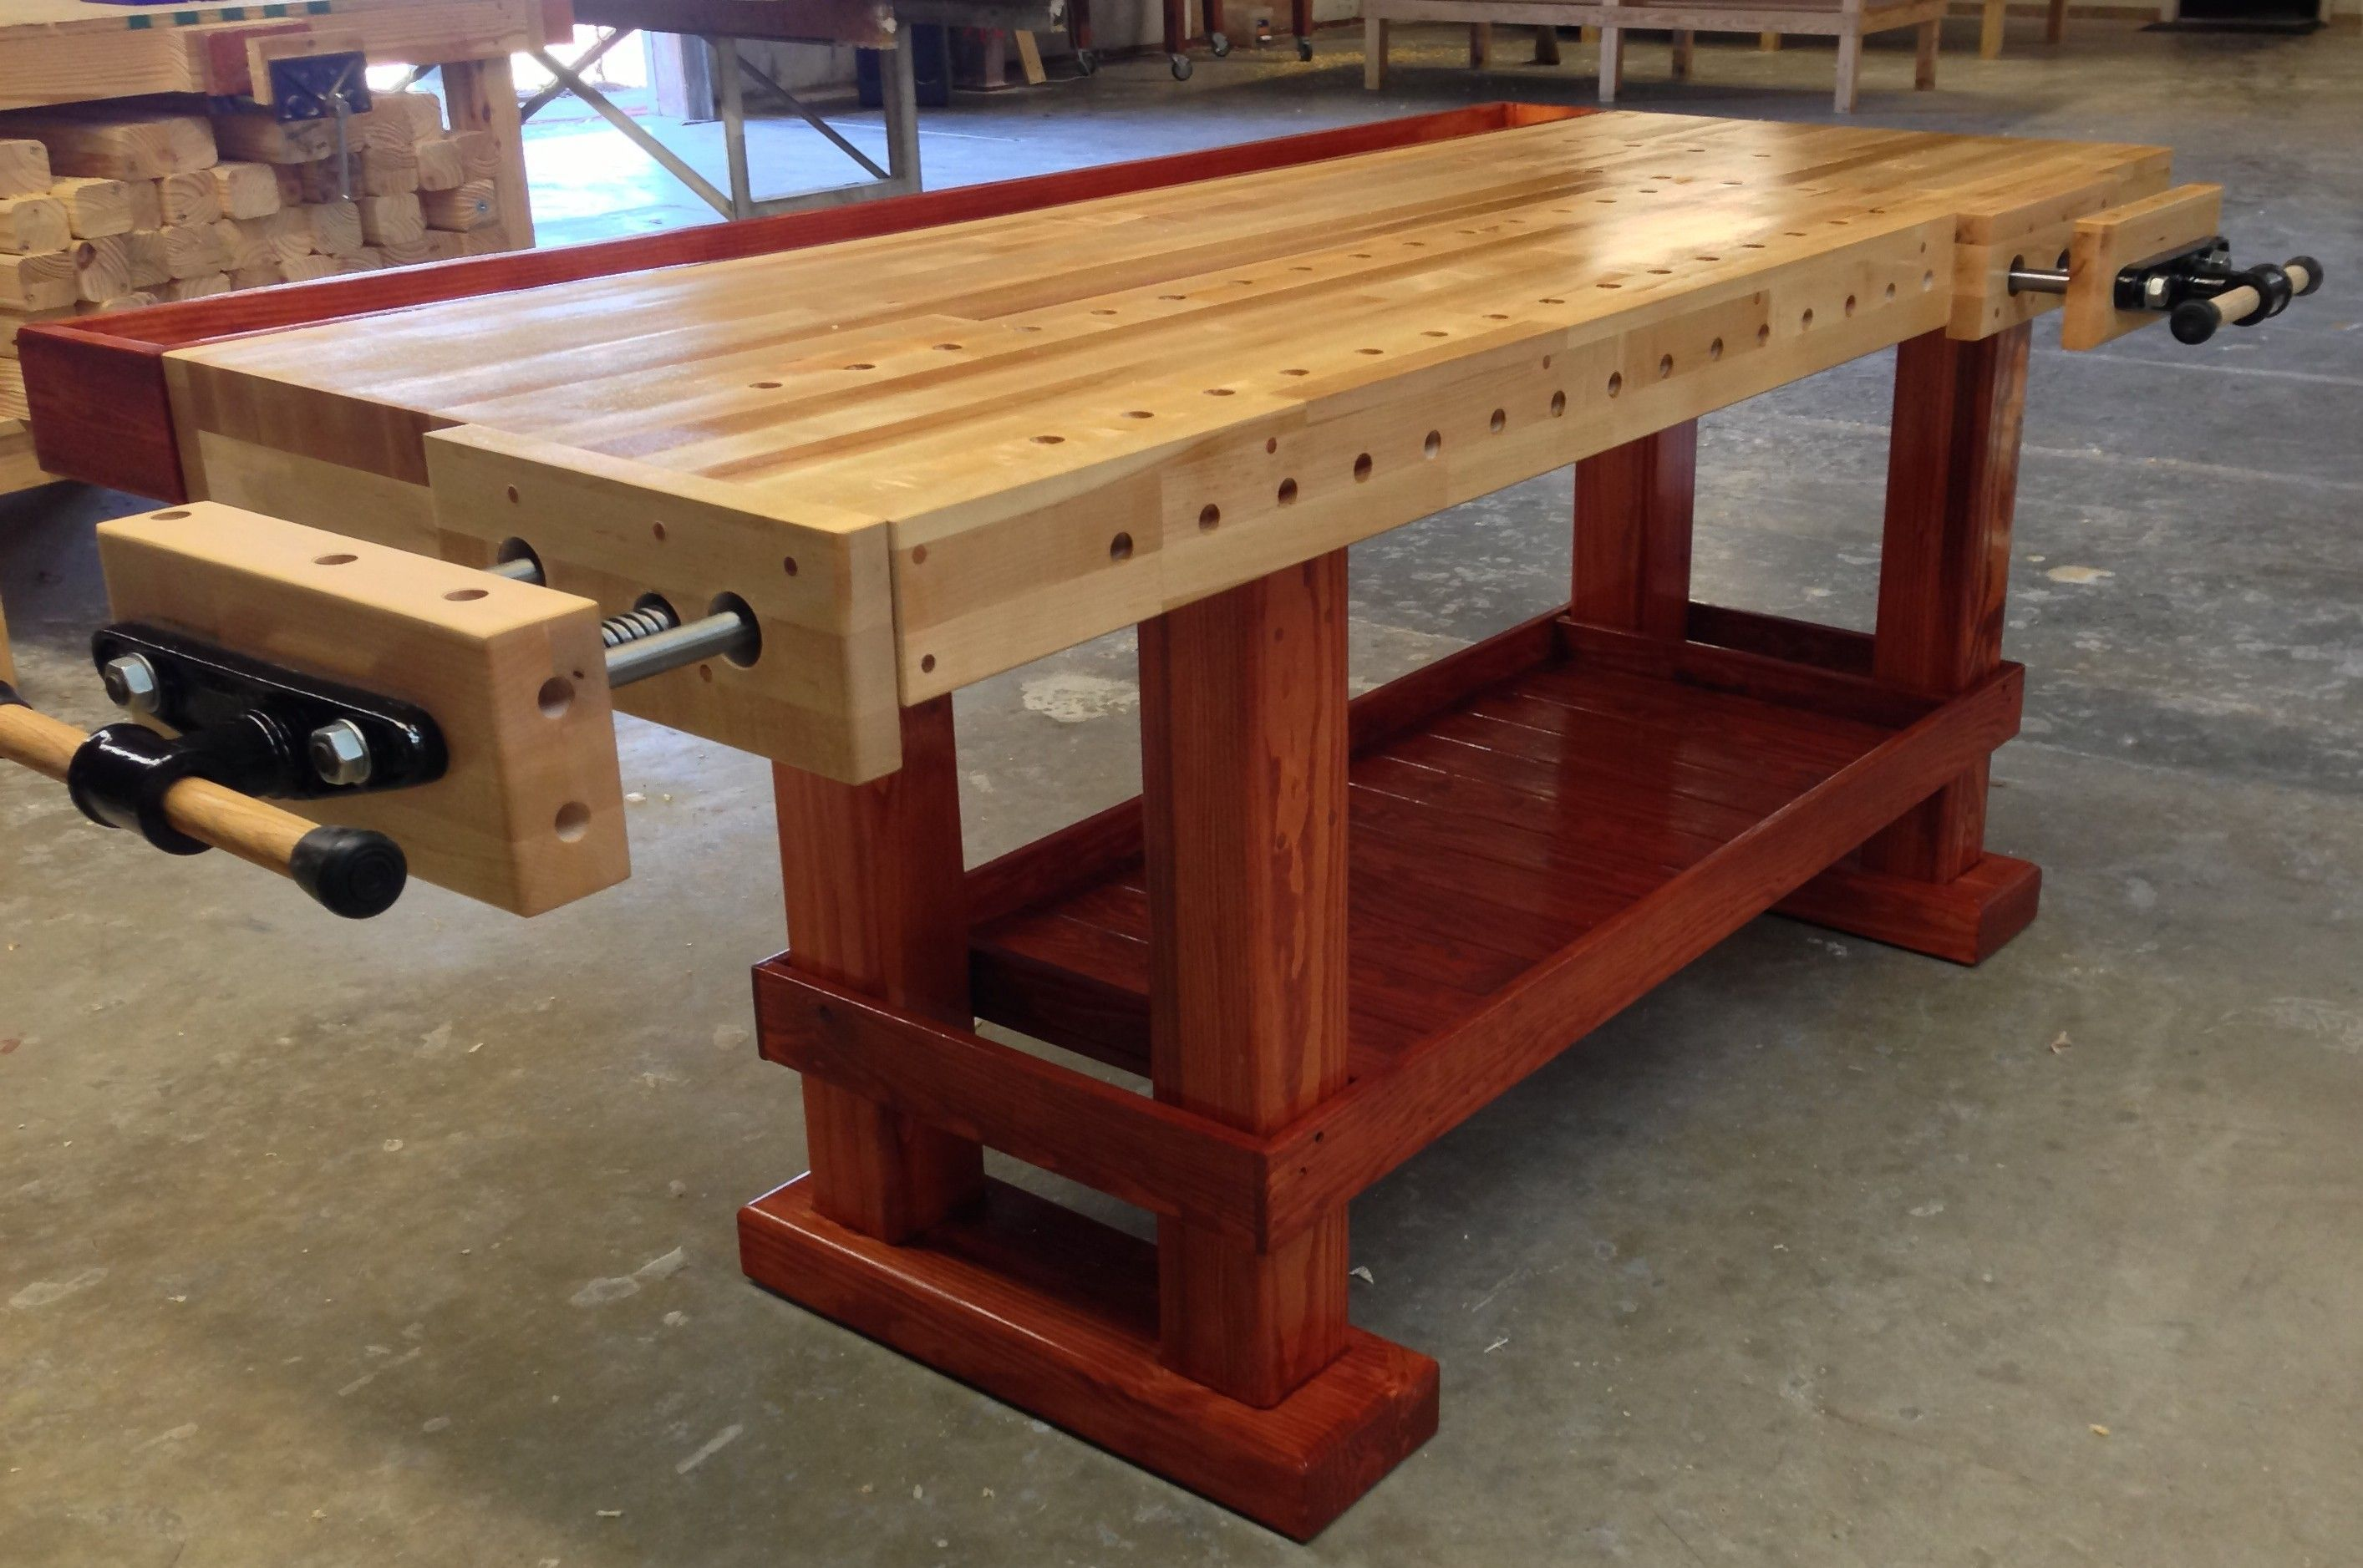 The Original Paul Revere Woodworking bench